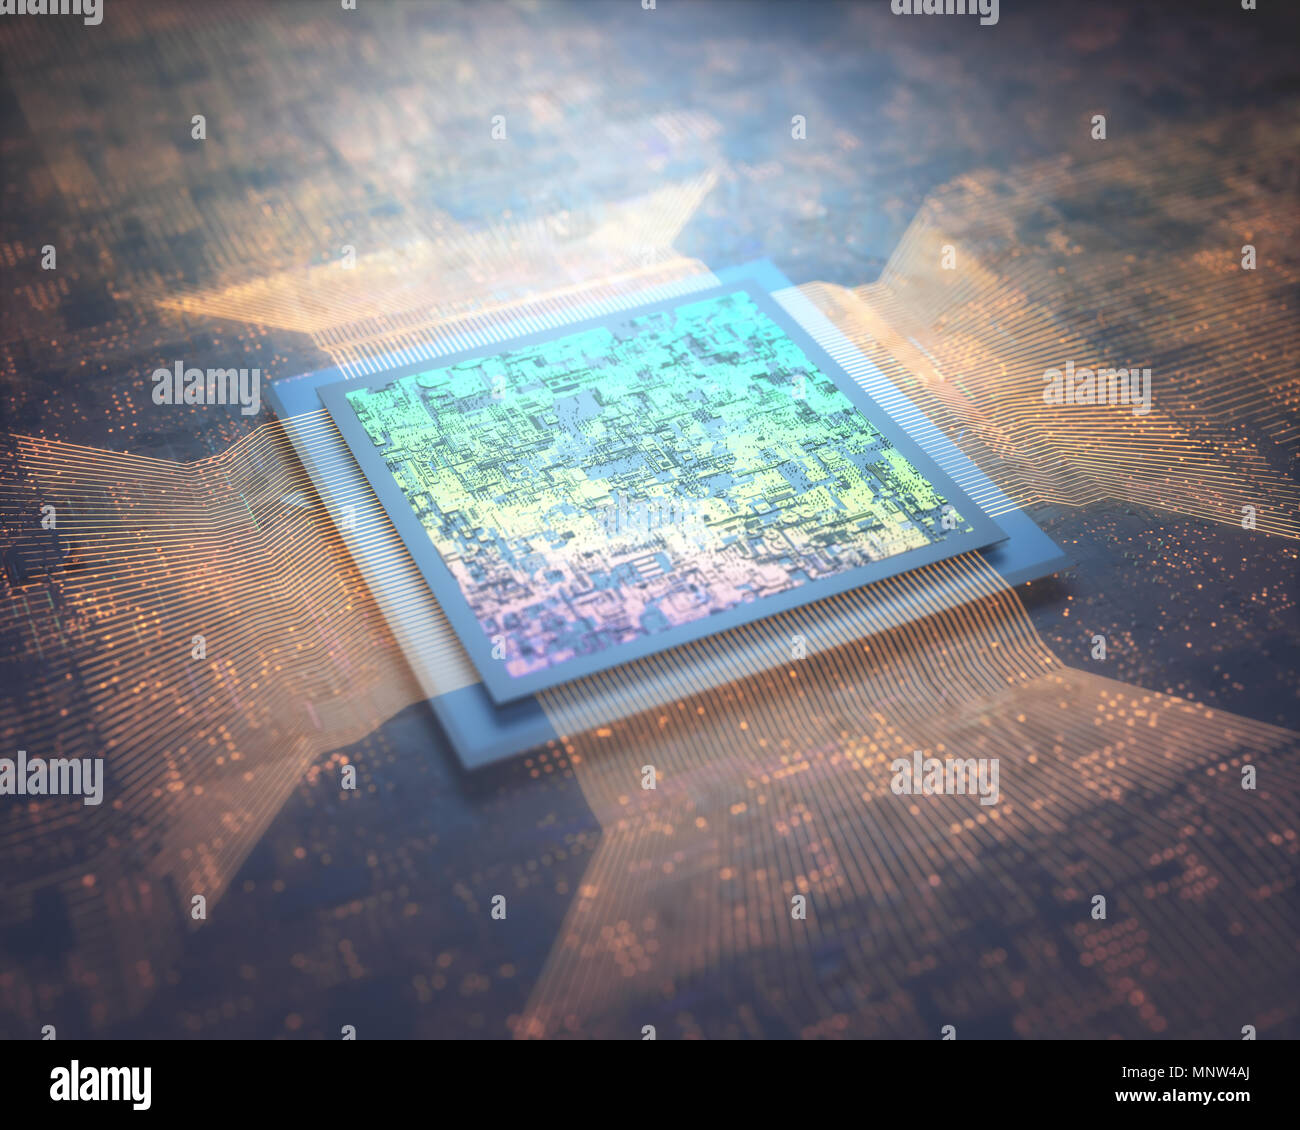 Microprocessor, microchip connection to circuit board. Abstract concept image, macro and nano technology. - Stock Image